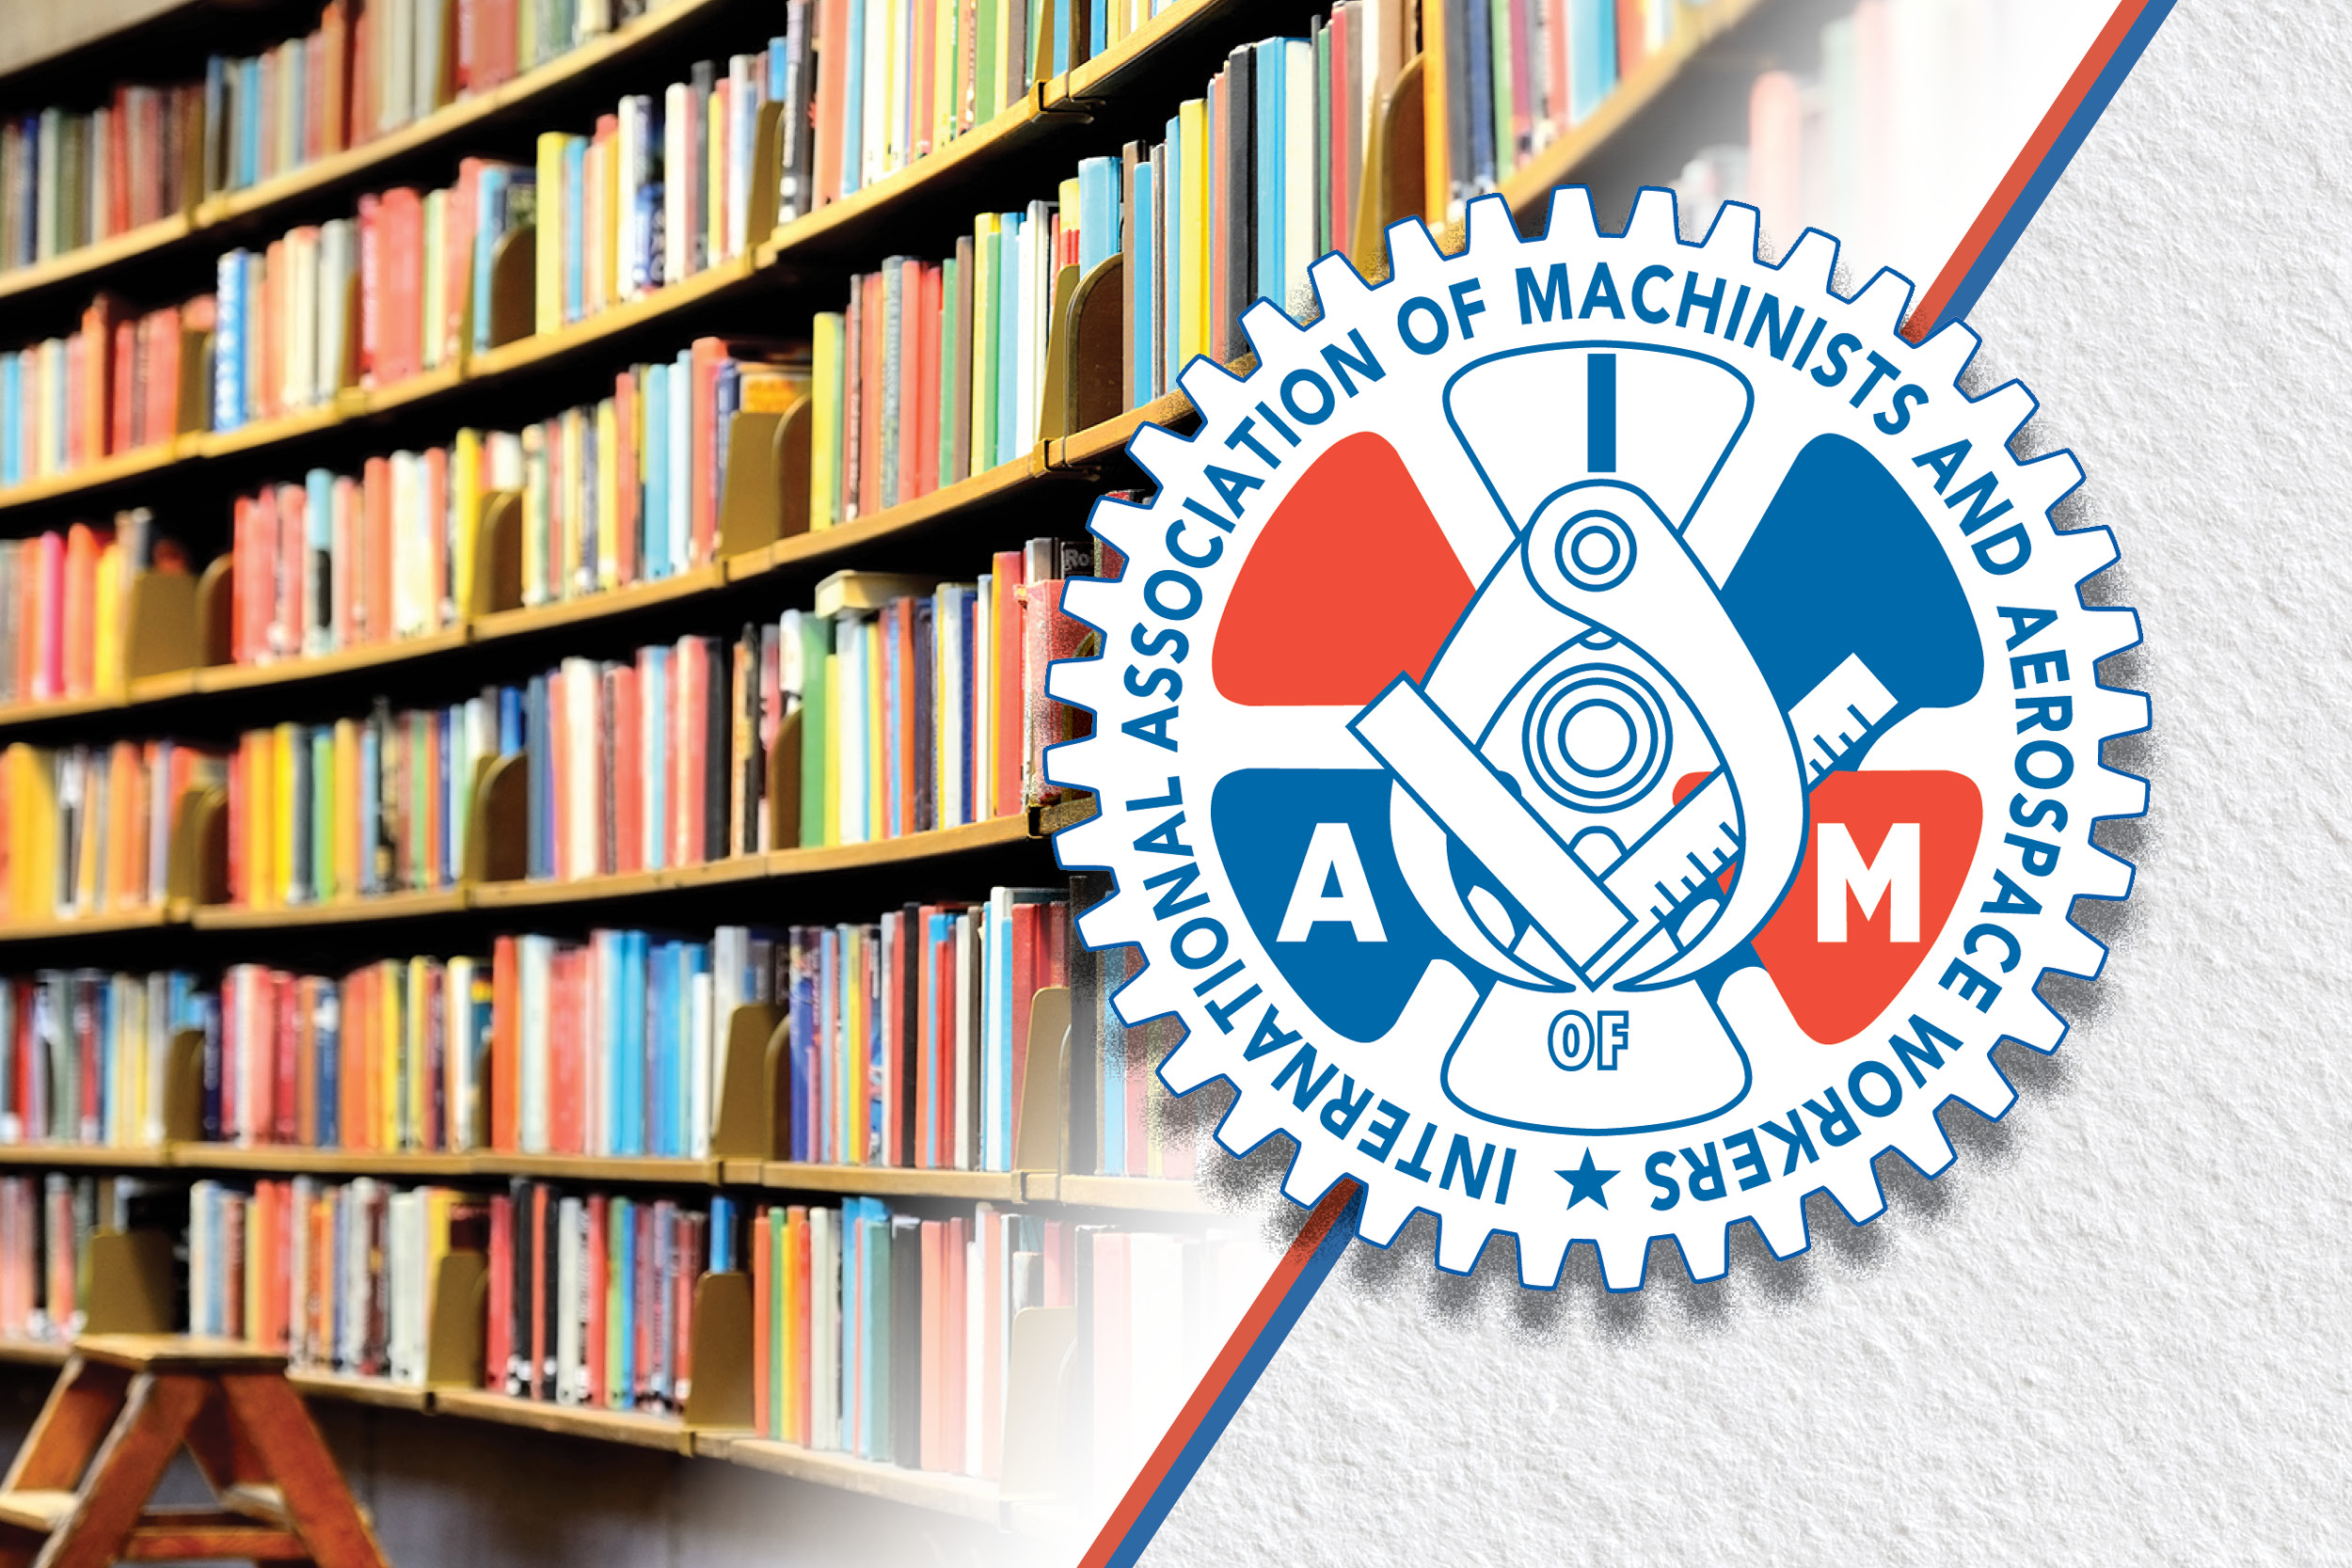 Maryland Law Giving Baltimore County Public Library Employees the Right to Collectively Bargain and Join the Machinists Union Goes Into Effect July 1st